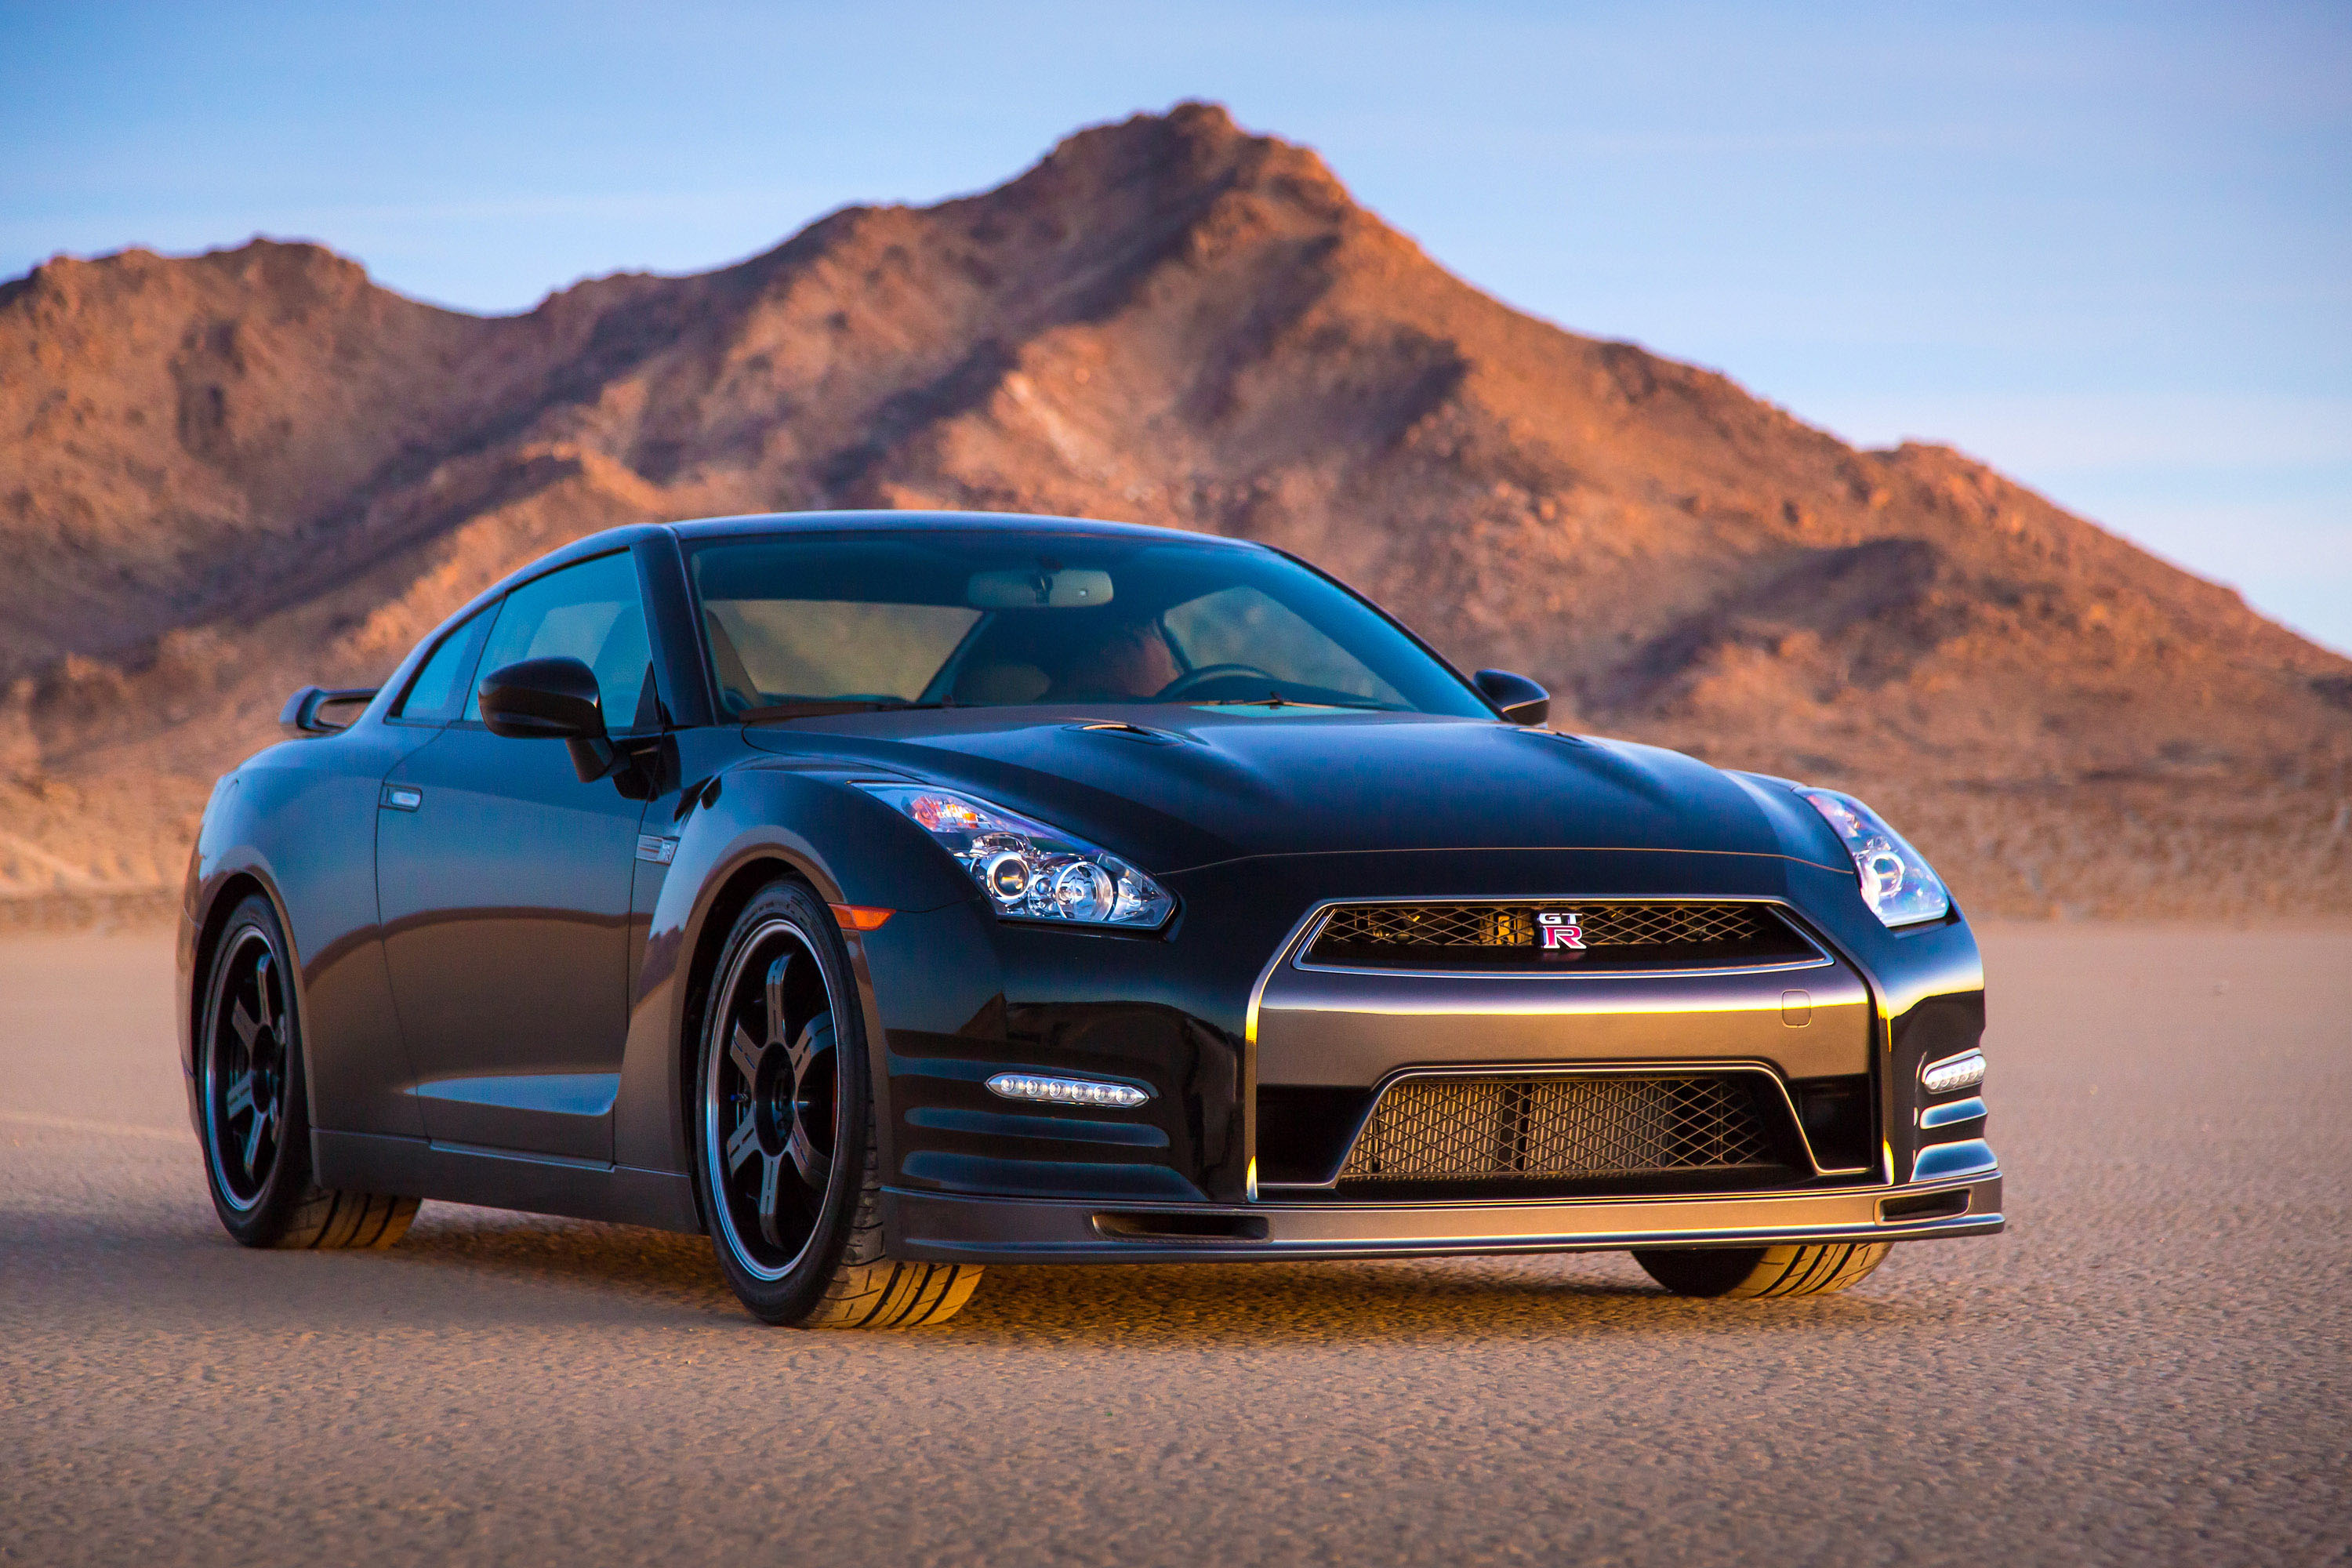 Nissan GT-R photo #1